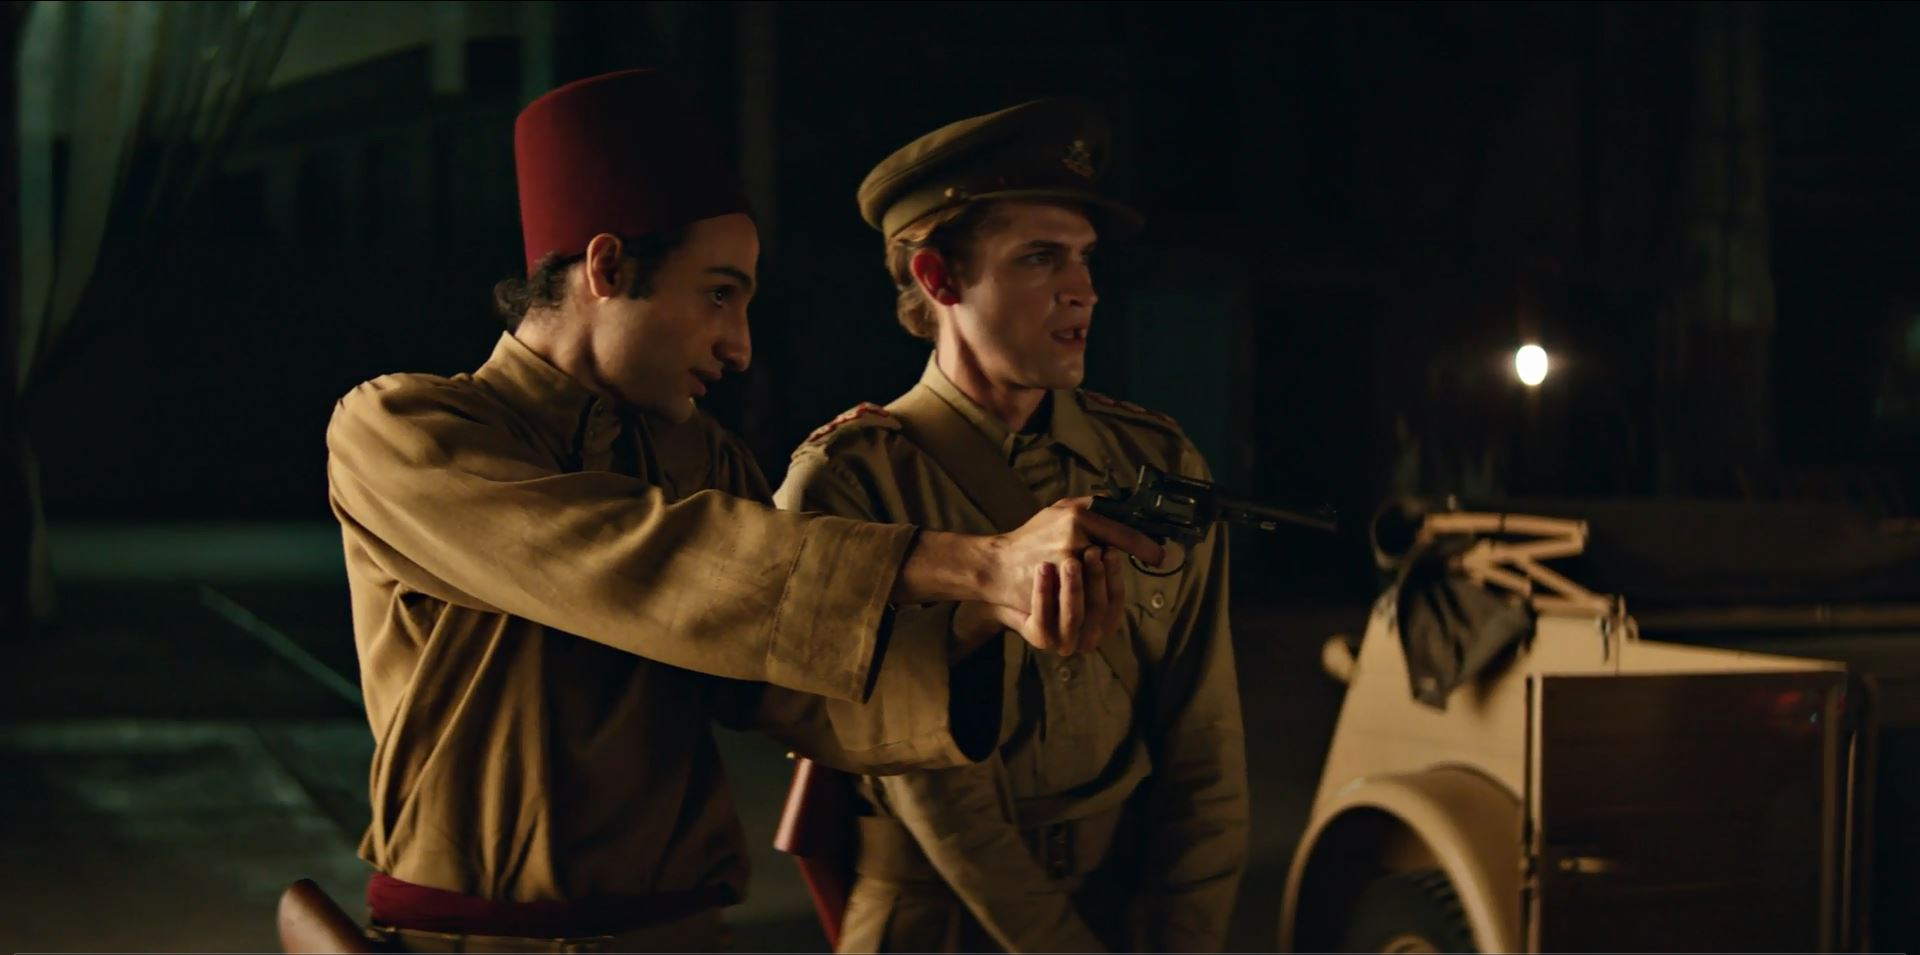 Stargate Origins - Wasif and Beal